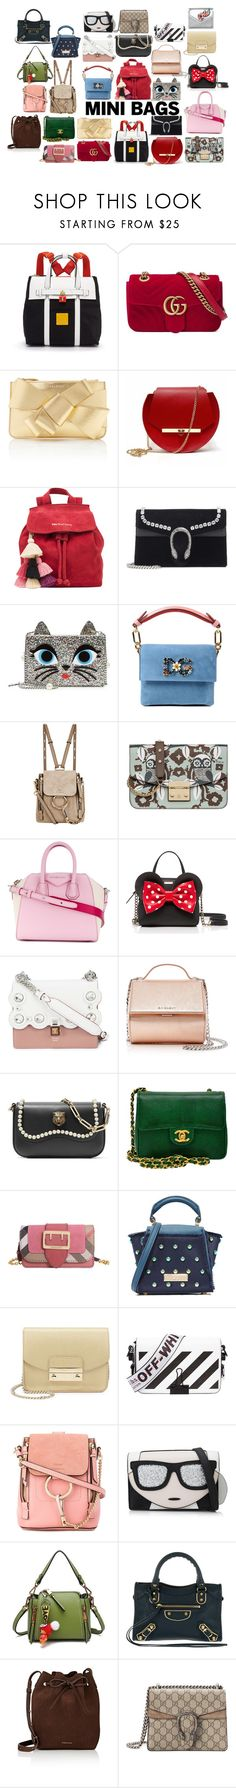 """""""Mini Bags"""" by christinemusal ❤ liked on Polyvore featuring Henri Bendel, Gucci, Delpozo, Angela Valentine Handbags, The Wolf Gang, Karl Lagerfeld, Dolce&Gabbana, Chloé, Furla and Givenchy"""